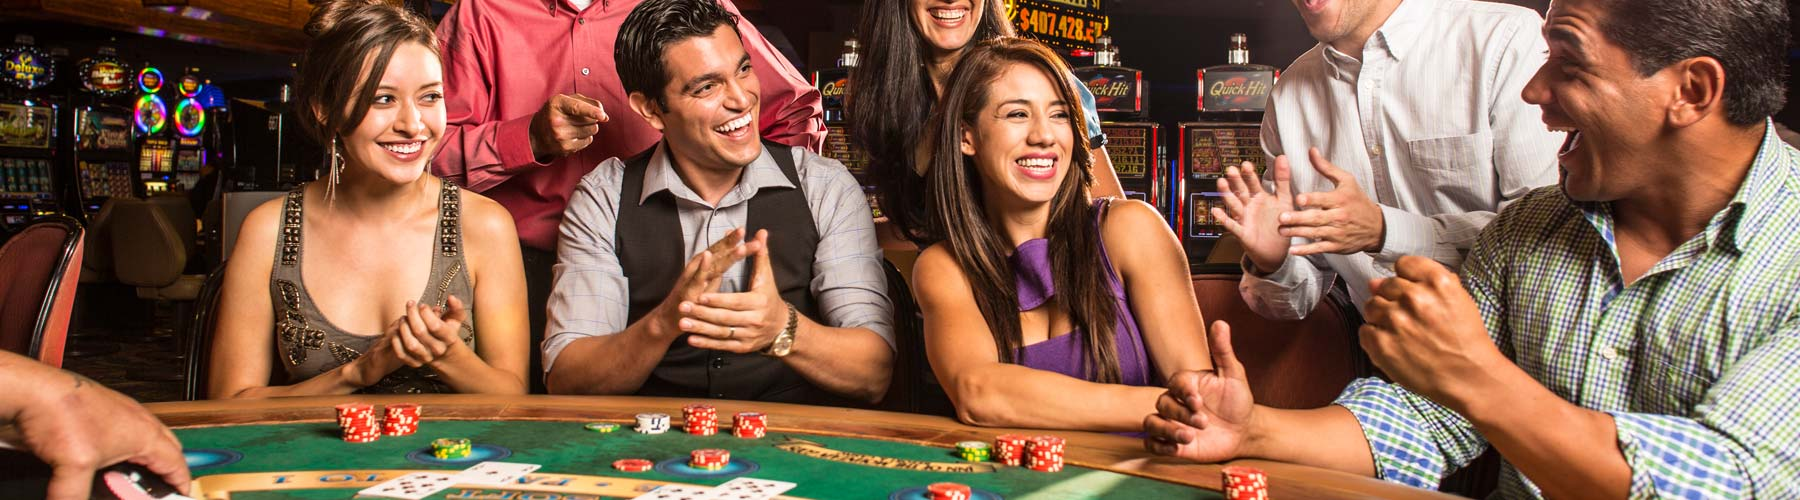 Casino careers online grand casino mullet bay